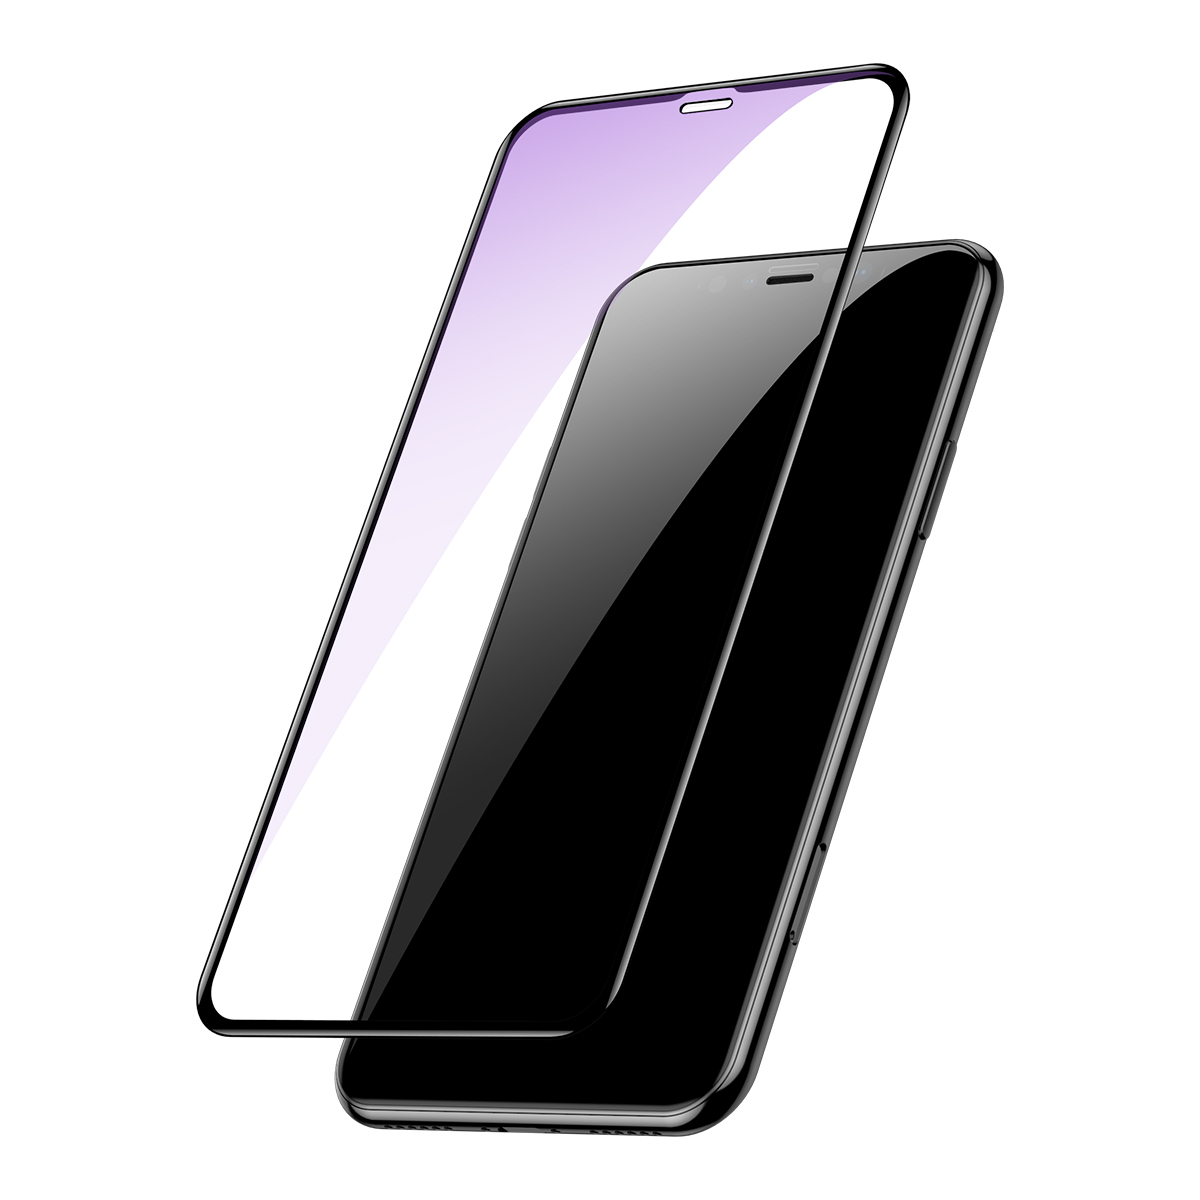 Baseus 0.2mm Full Screen Arc Surface Clear/Anti Blue Light Tempered Glass Screen Protector For iPhone XR